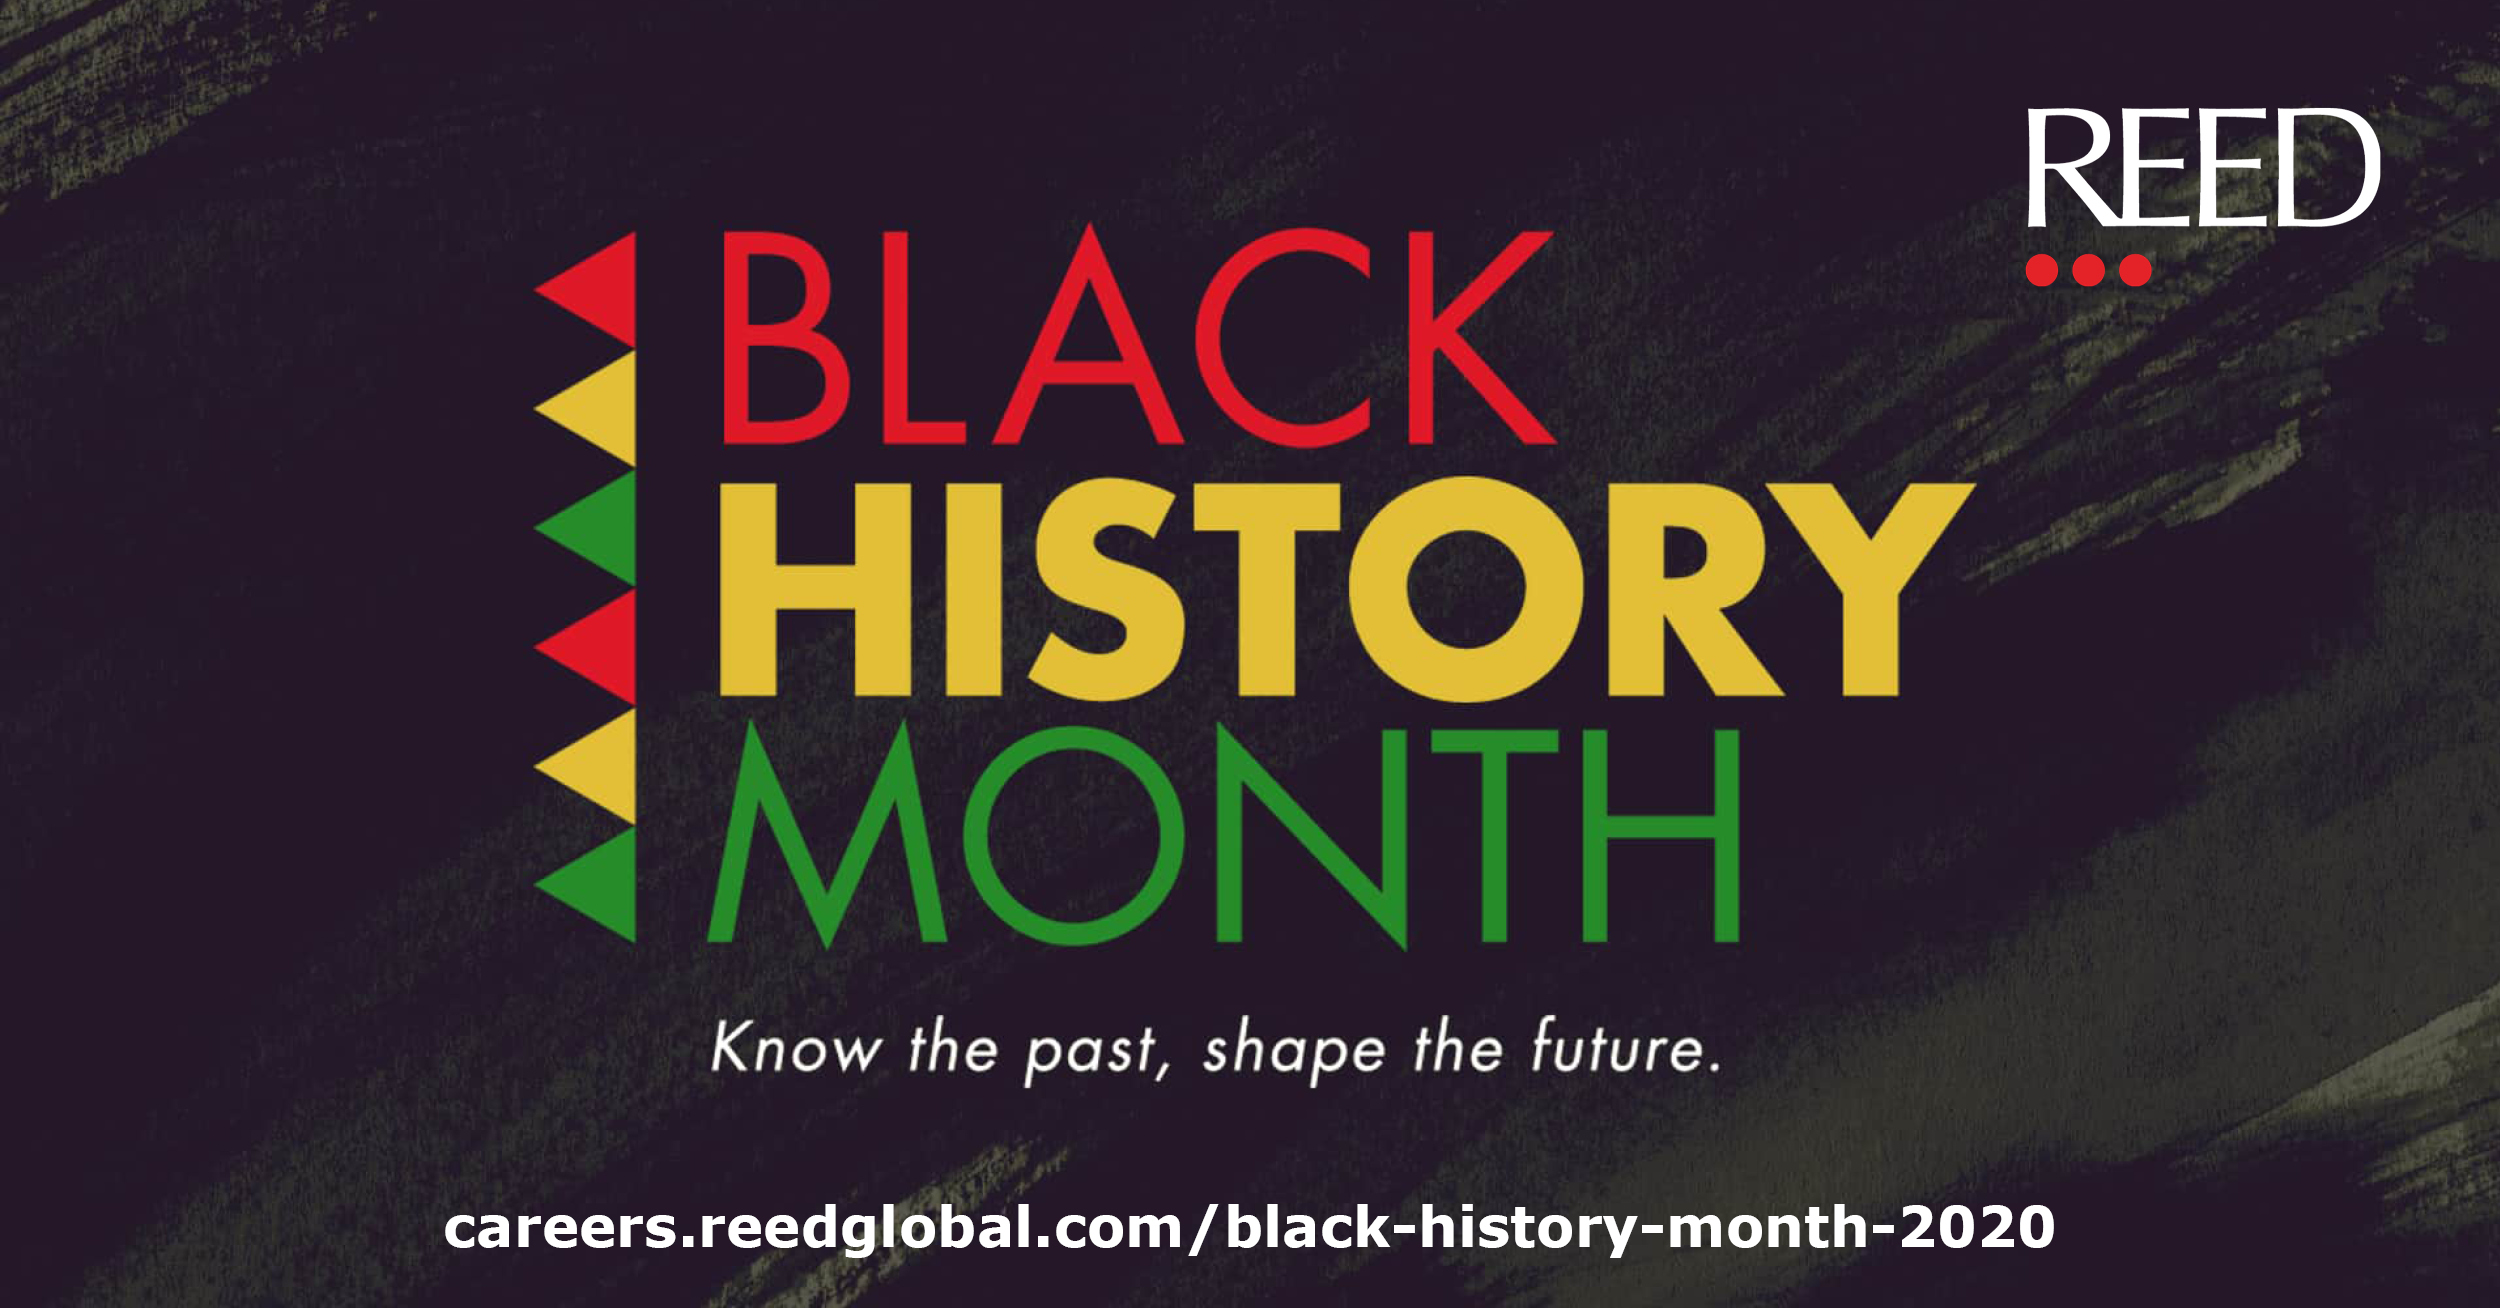 black history month 2020 - REED stories